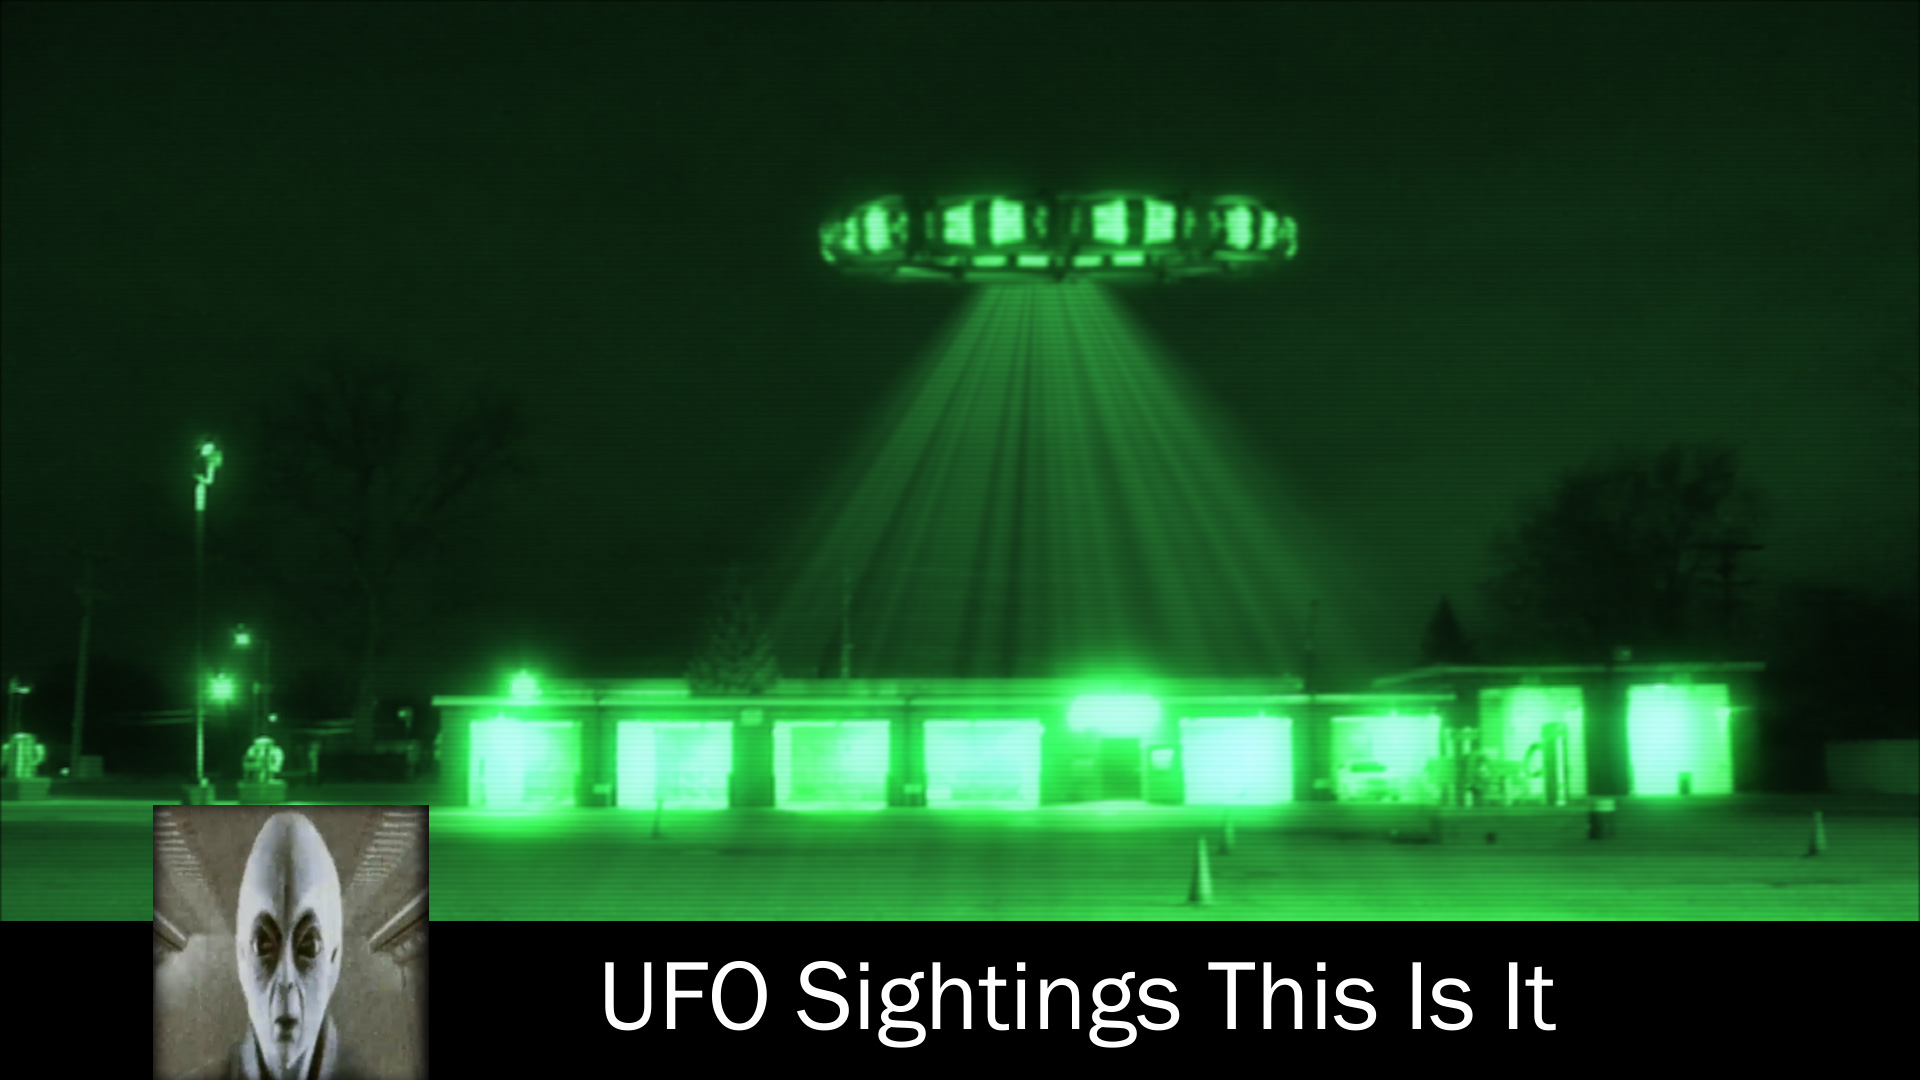 UFO Sightings This Is It June 28th 2017